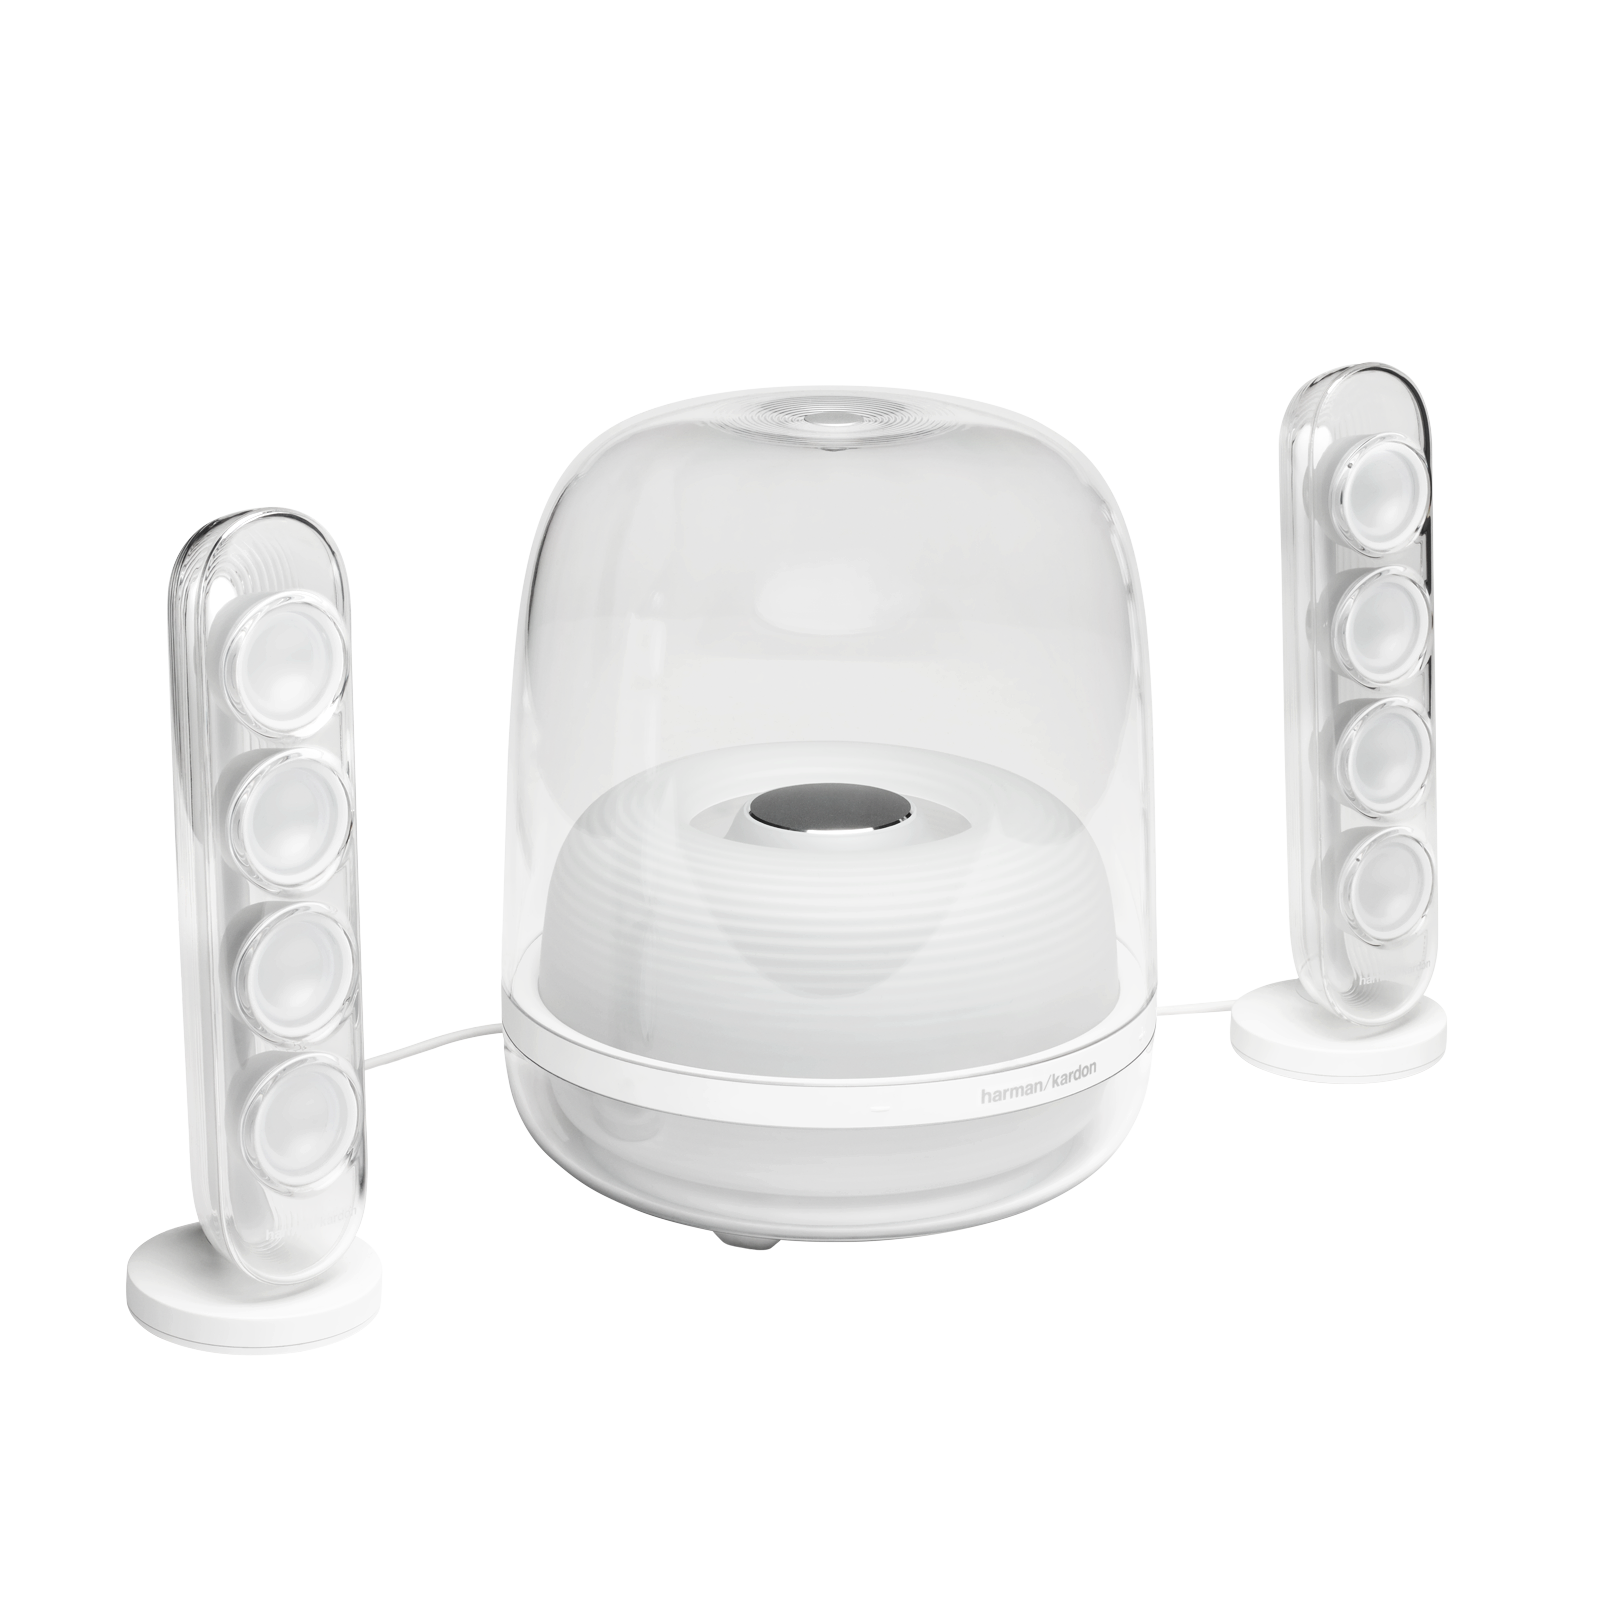 Harman Kardon SoundSticks 4 - White - Bluetooth Speaker System - Hero